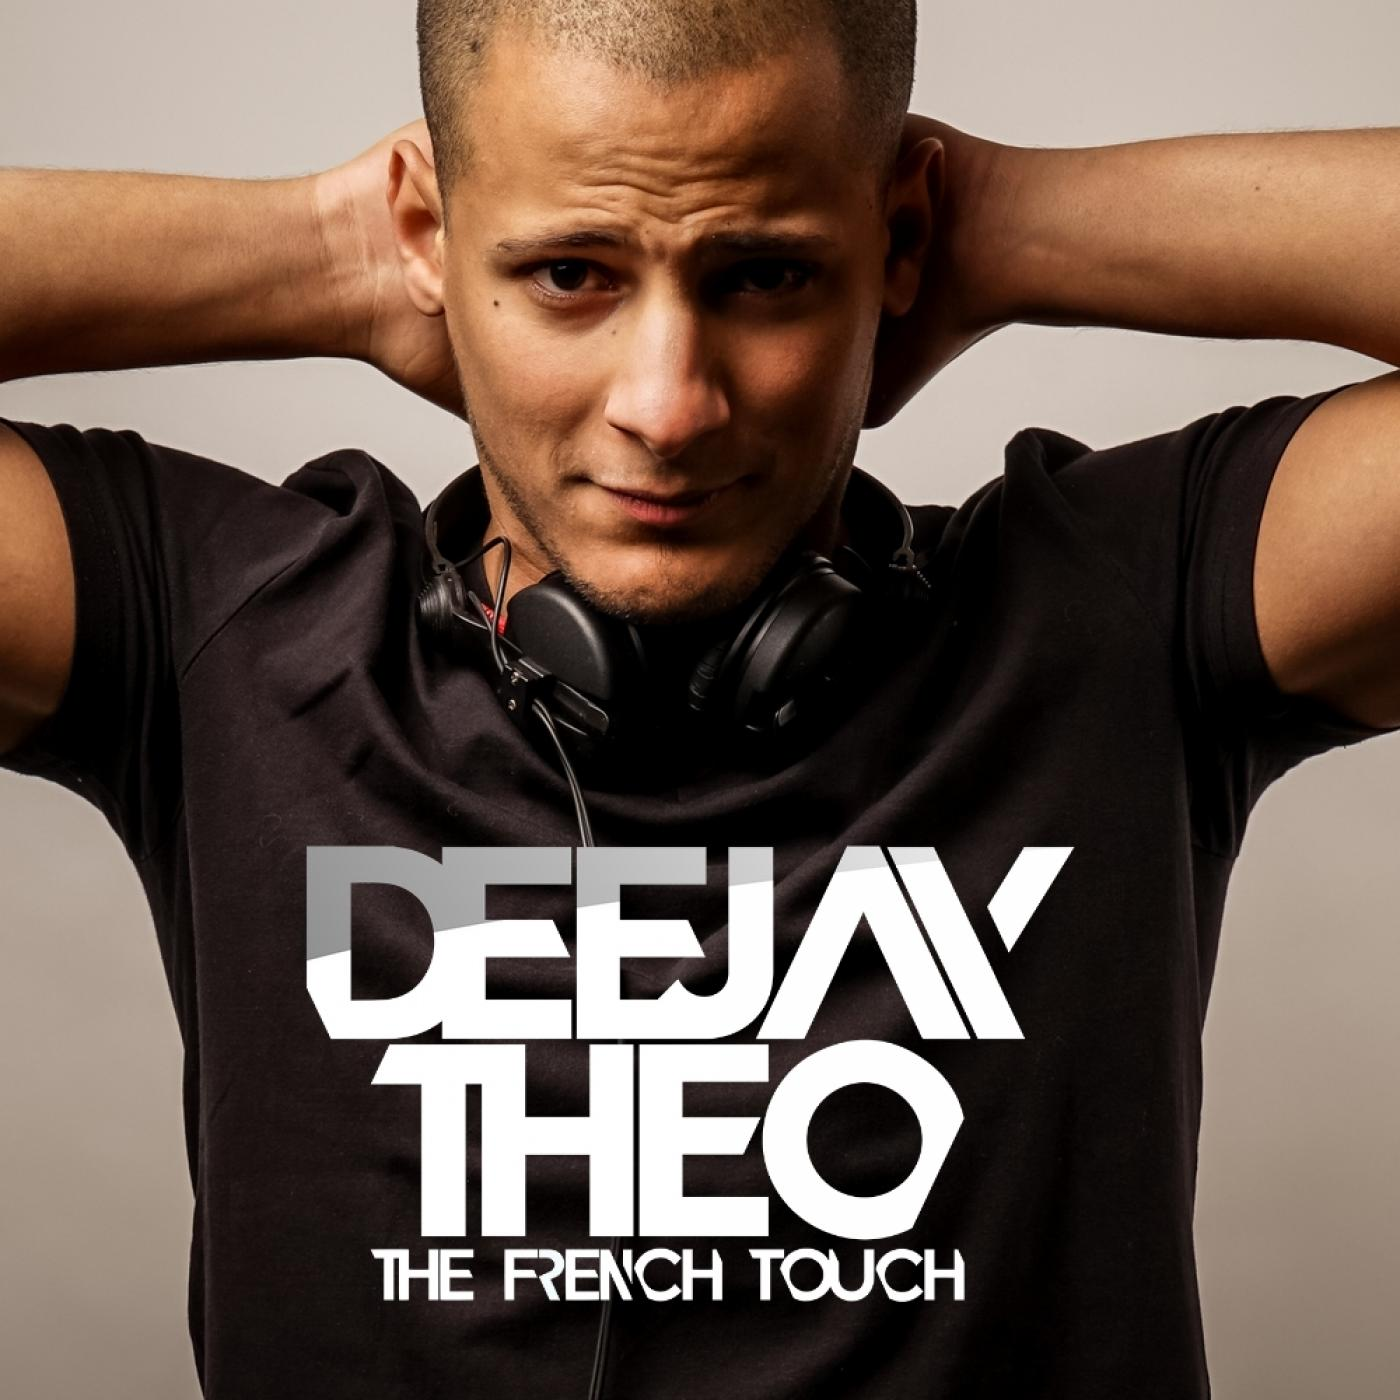 DEEJAY THEO // THE FRENCH TOUCH